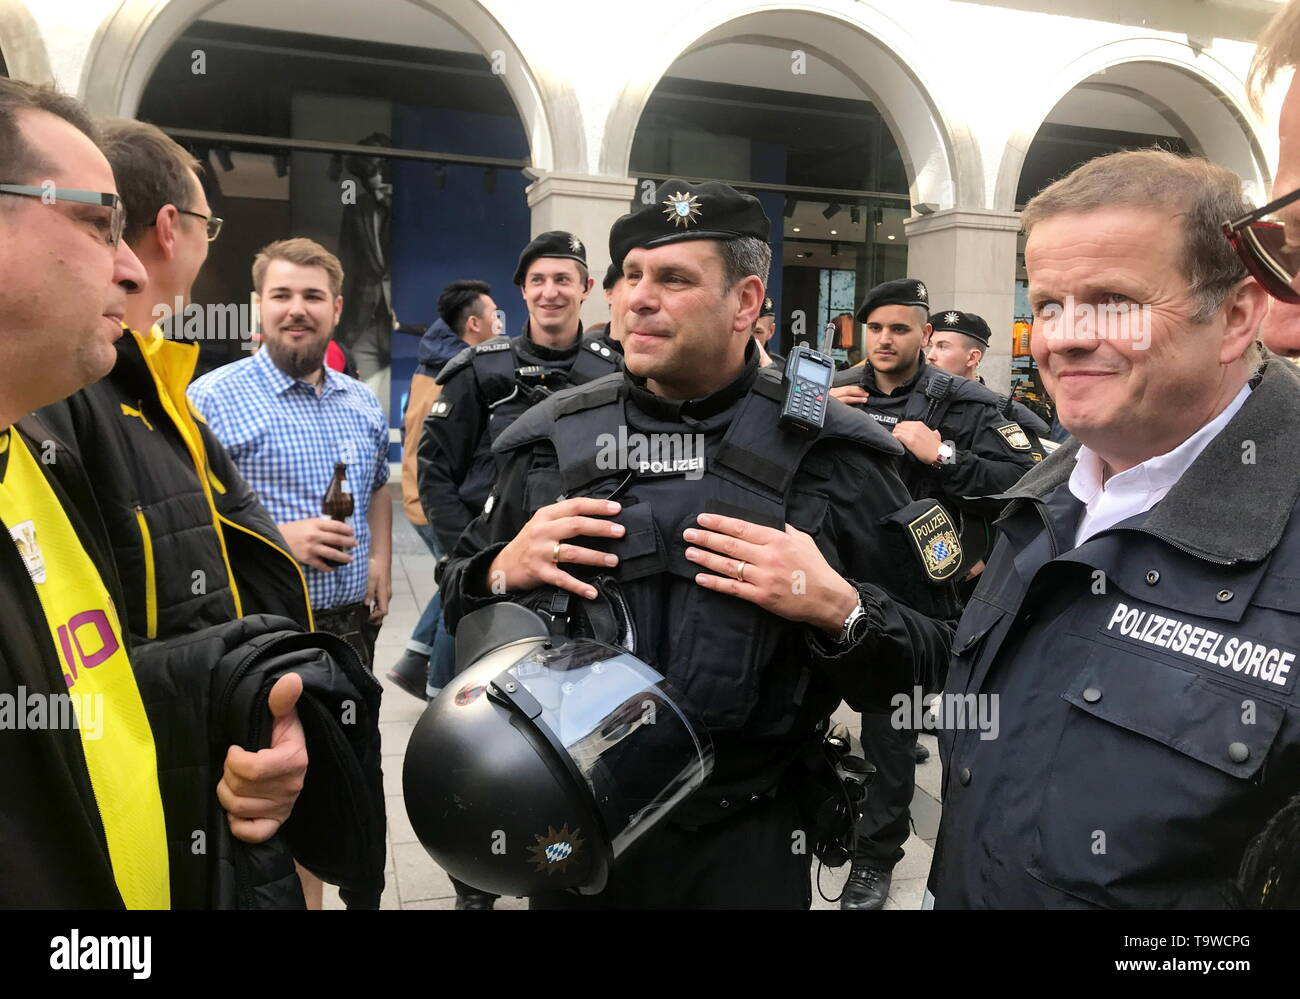 Munich, Germany. 17th May, 2019. Police chaplain Andreas Simbeck (r) talks to the leader of the police mission hundred, Dieter Winklmaier (M), with football fans. (to dpa-KORR ''It's about getting rid of it' - That's how police chaplains work') Credit: Wera Engelhardt/dpa/Alamy Live News - Stock Image